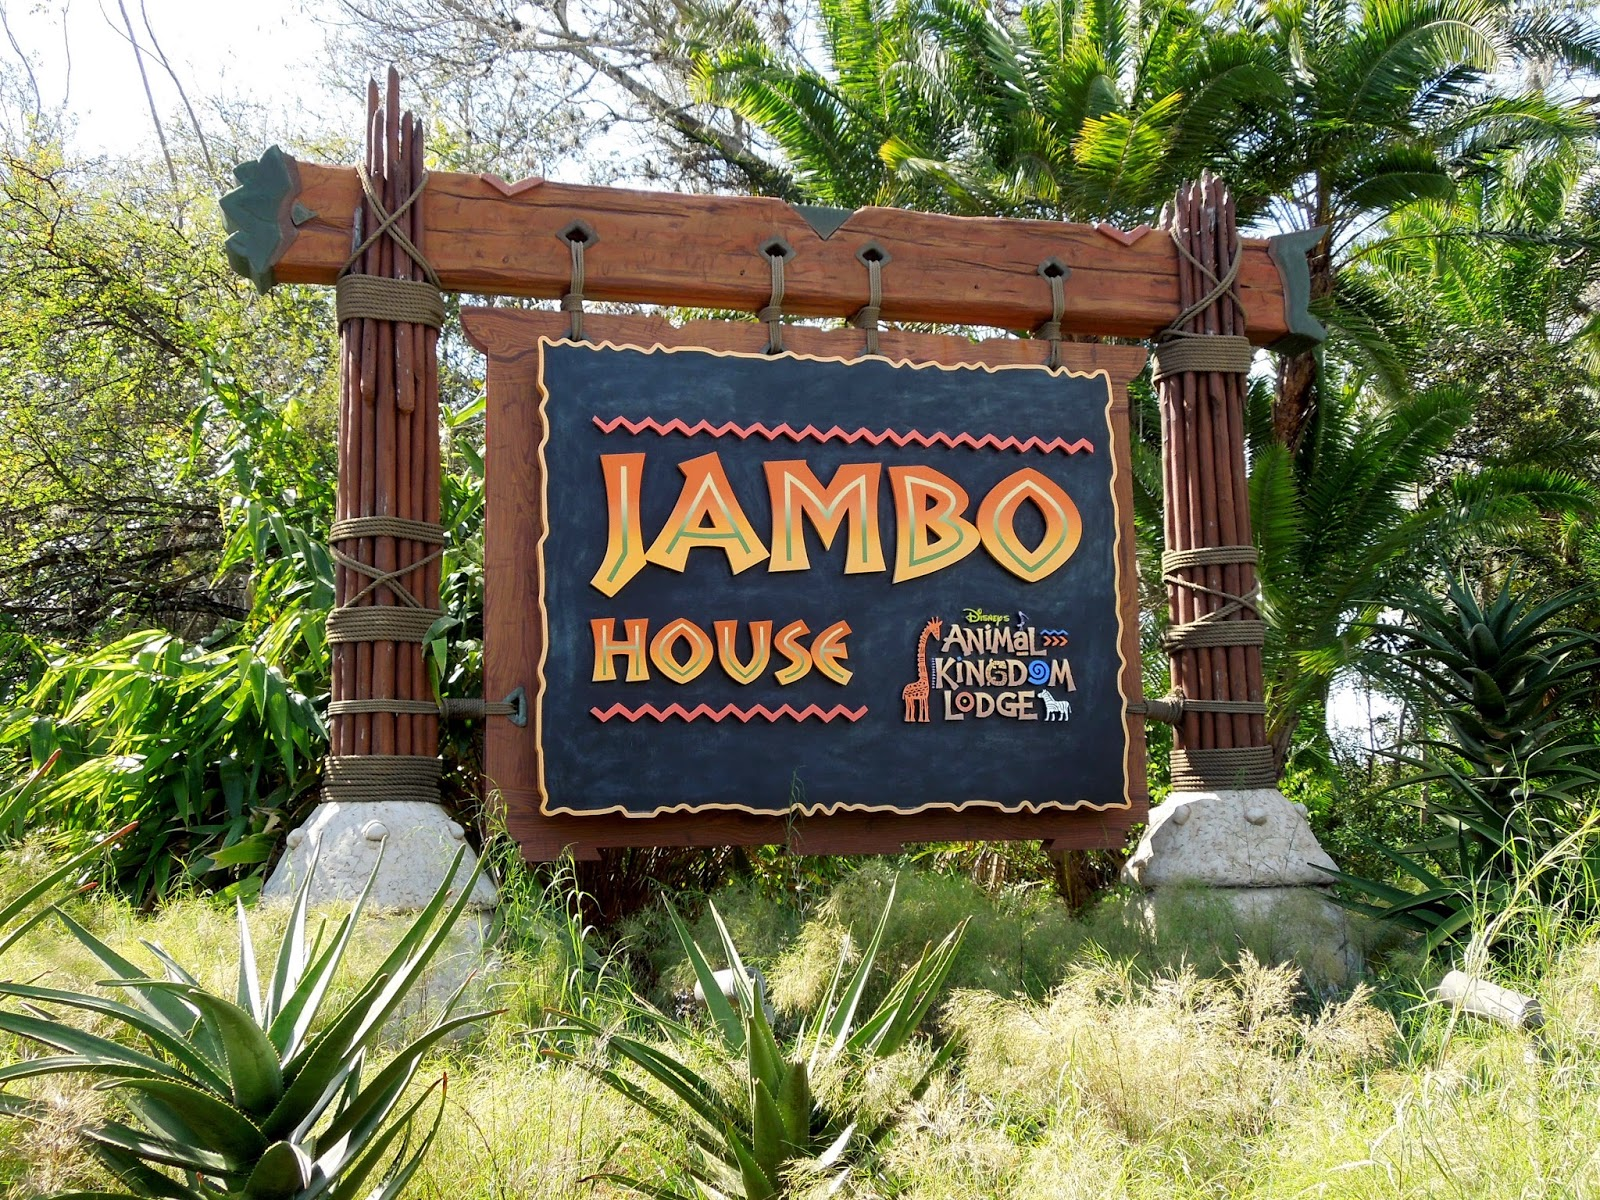 Jambo House sign